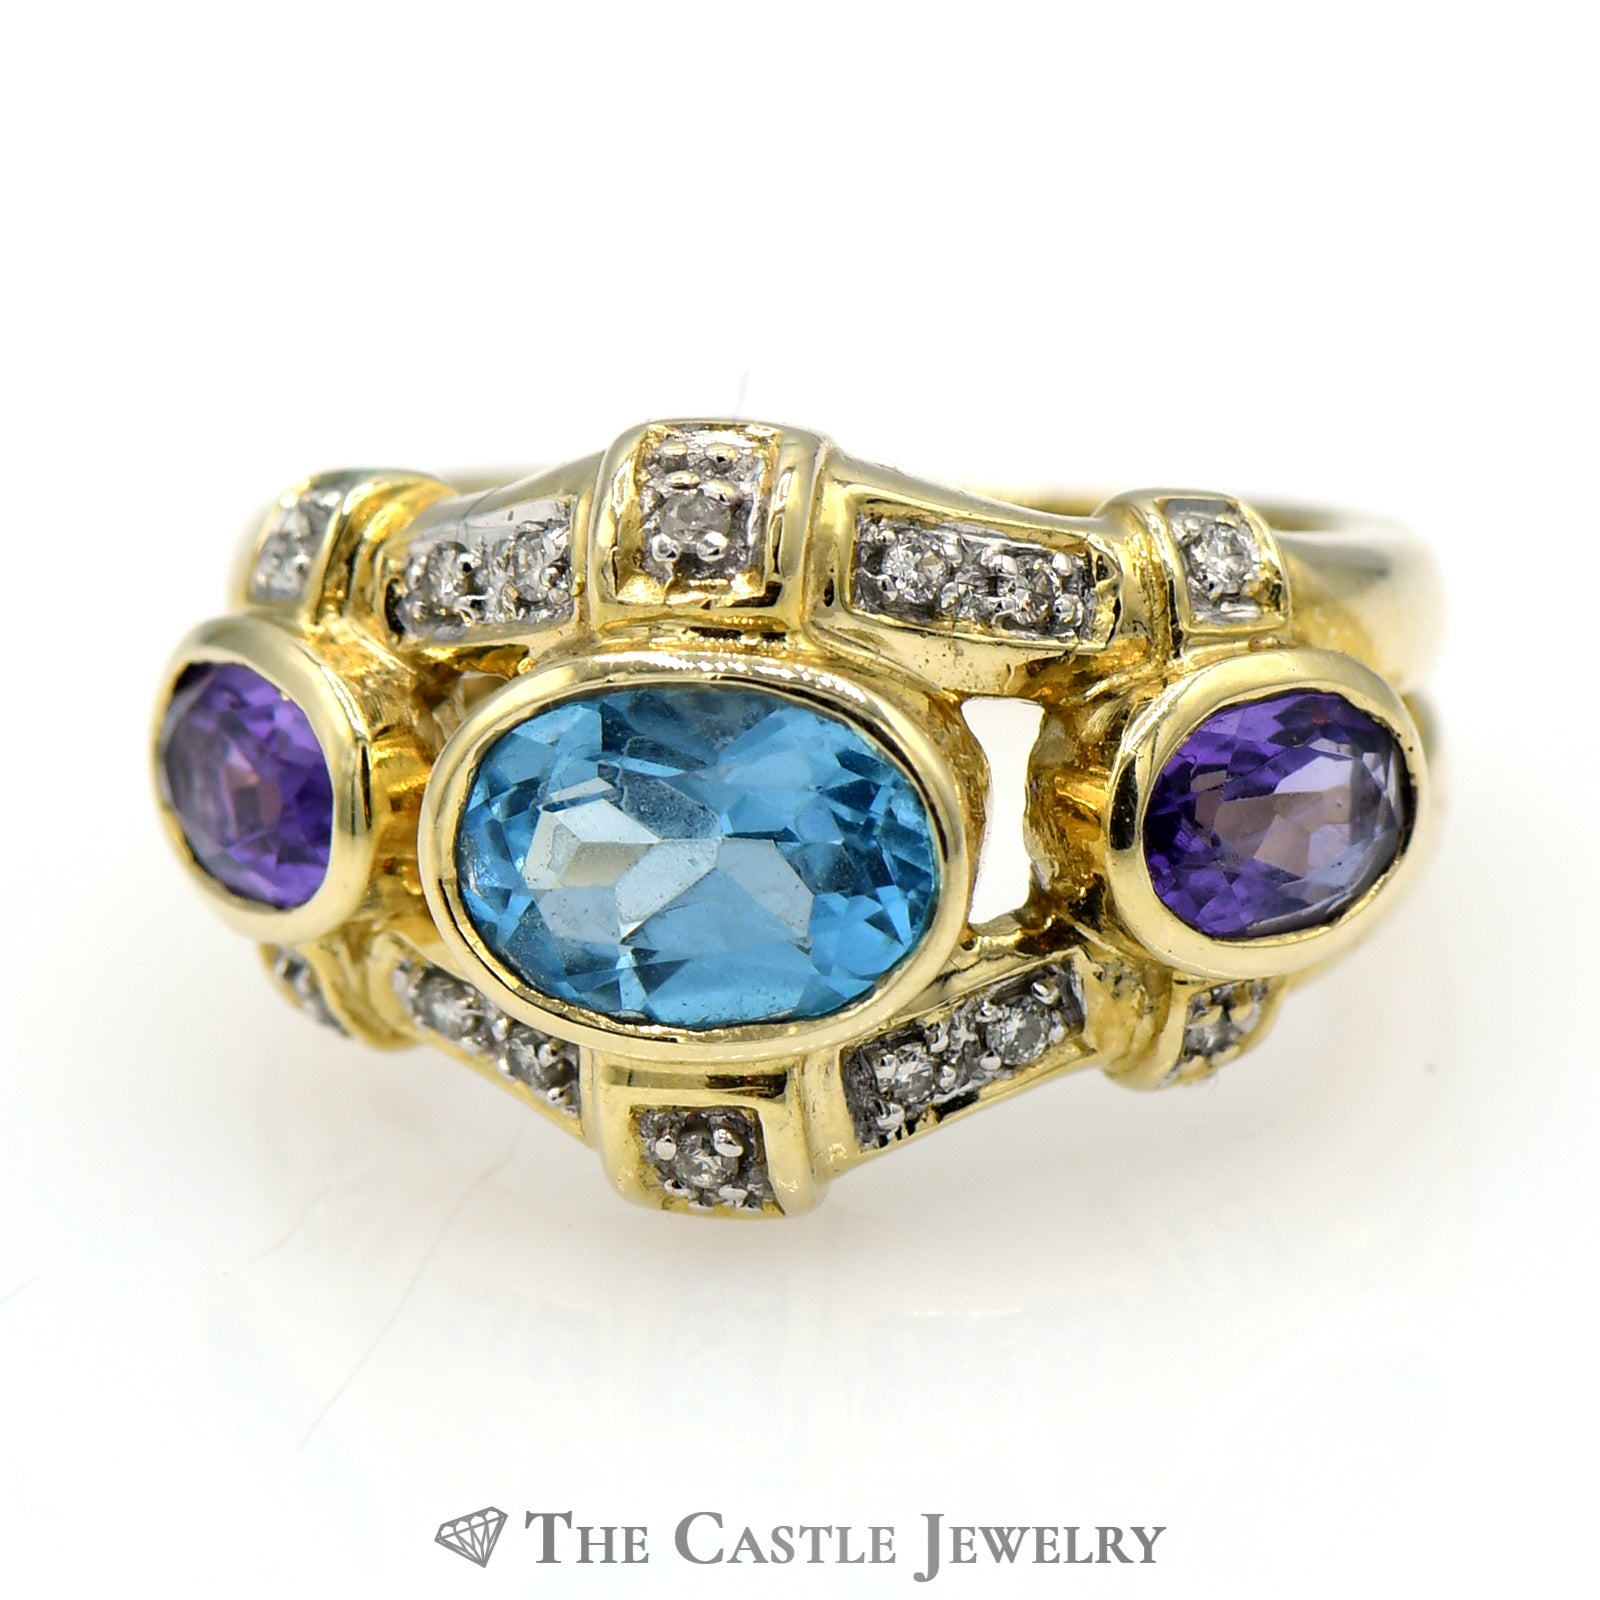 Blue Topaz Ring with Amethyst & Diamond Accents in 14k Yellow Gold